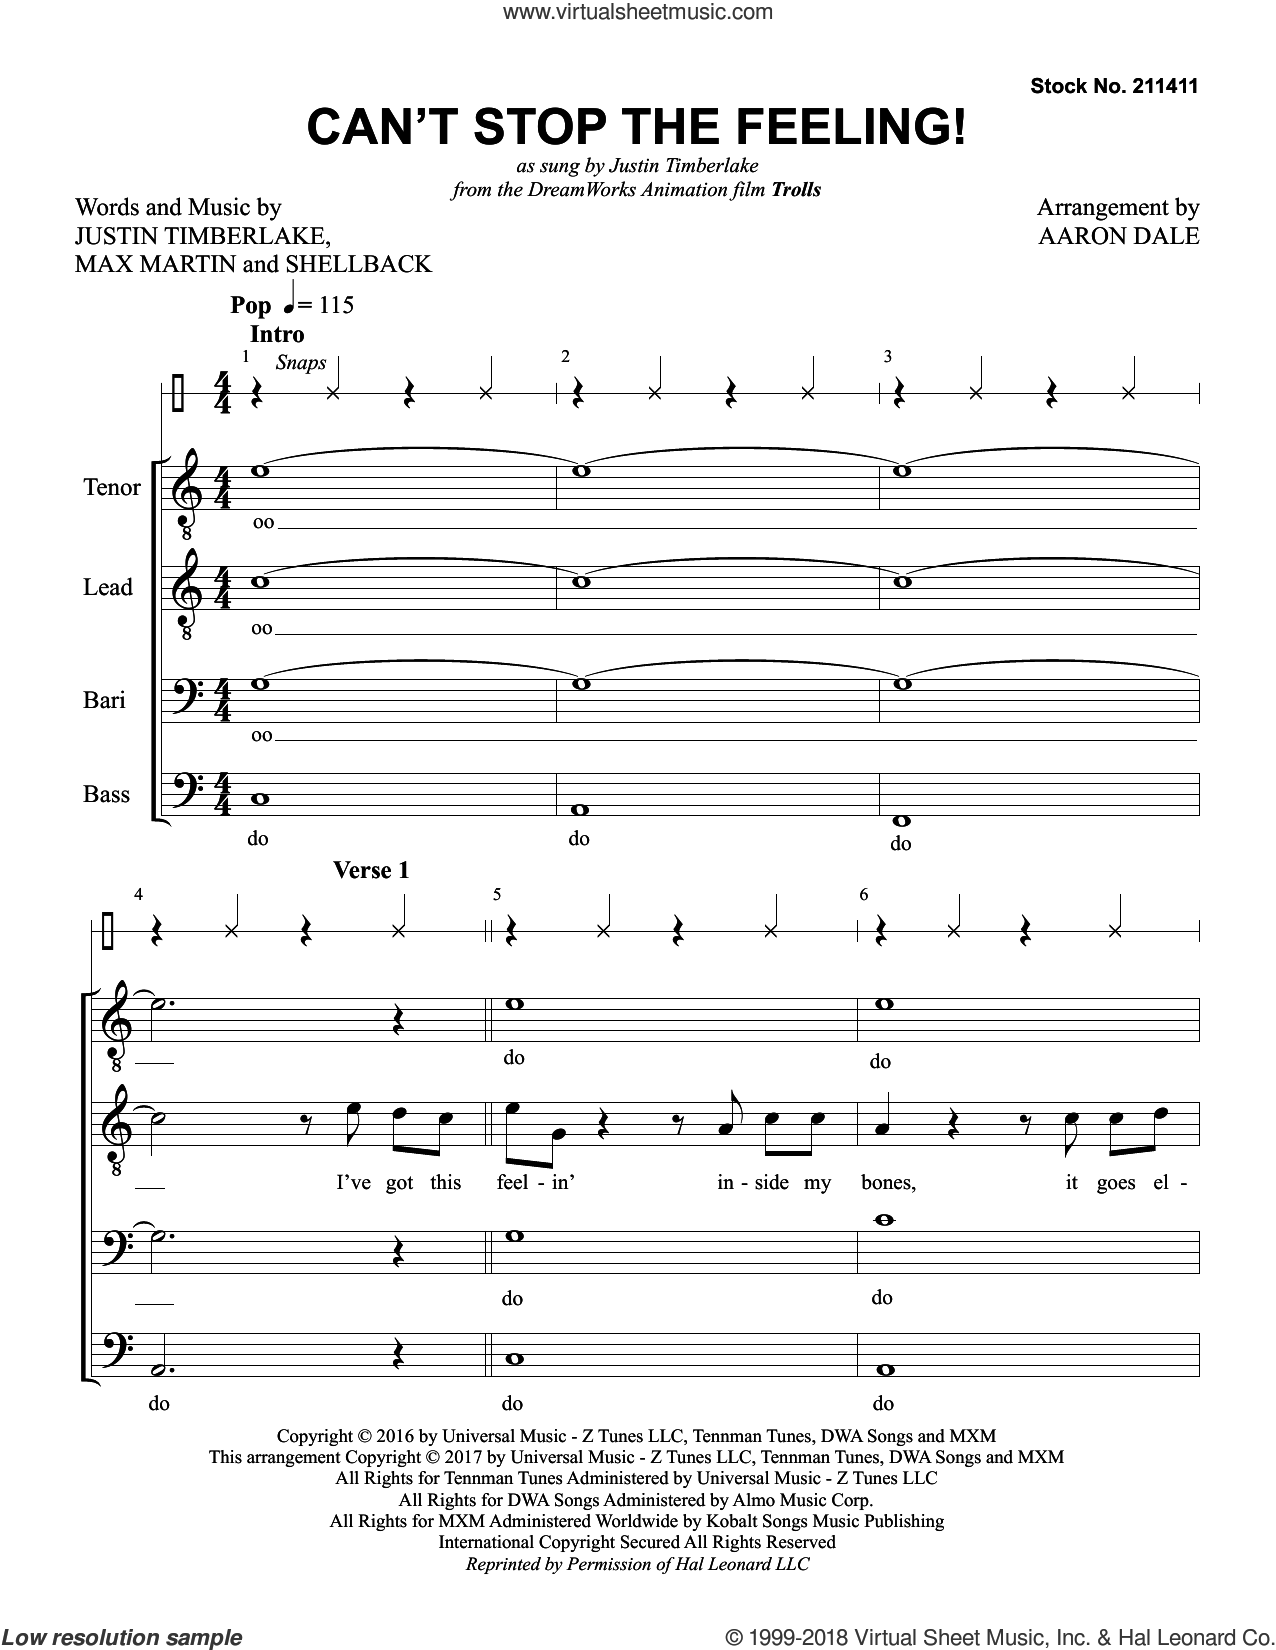 Can't Stop the Feeling! (arr. Aaron Dale) sheet music for choir (TTBB: tenor, bass) by Justin Timberlake, Aaron Dale, Johan Schuster, Max Martin and Shellback, intermediate skill level